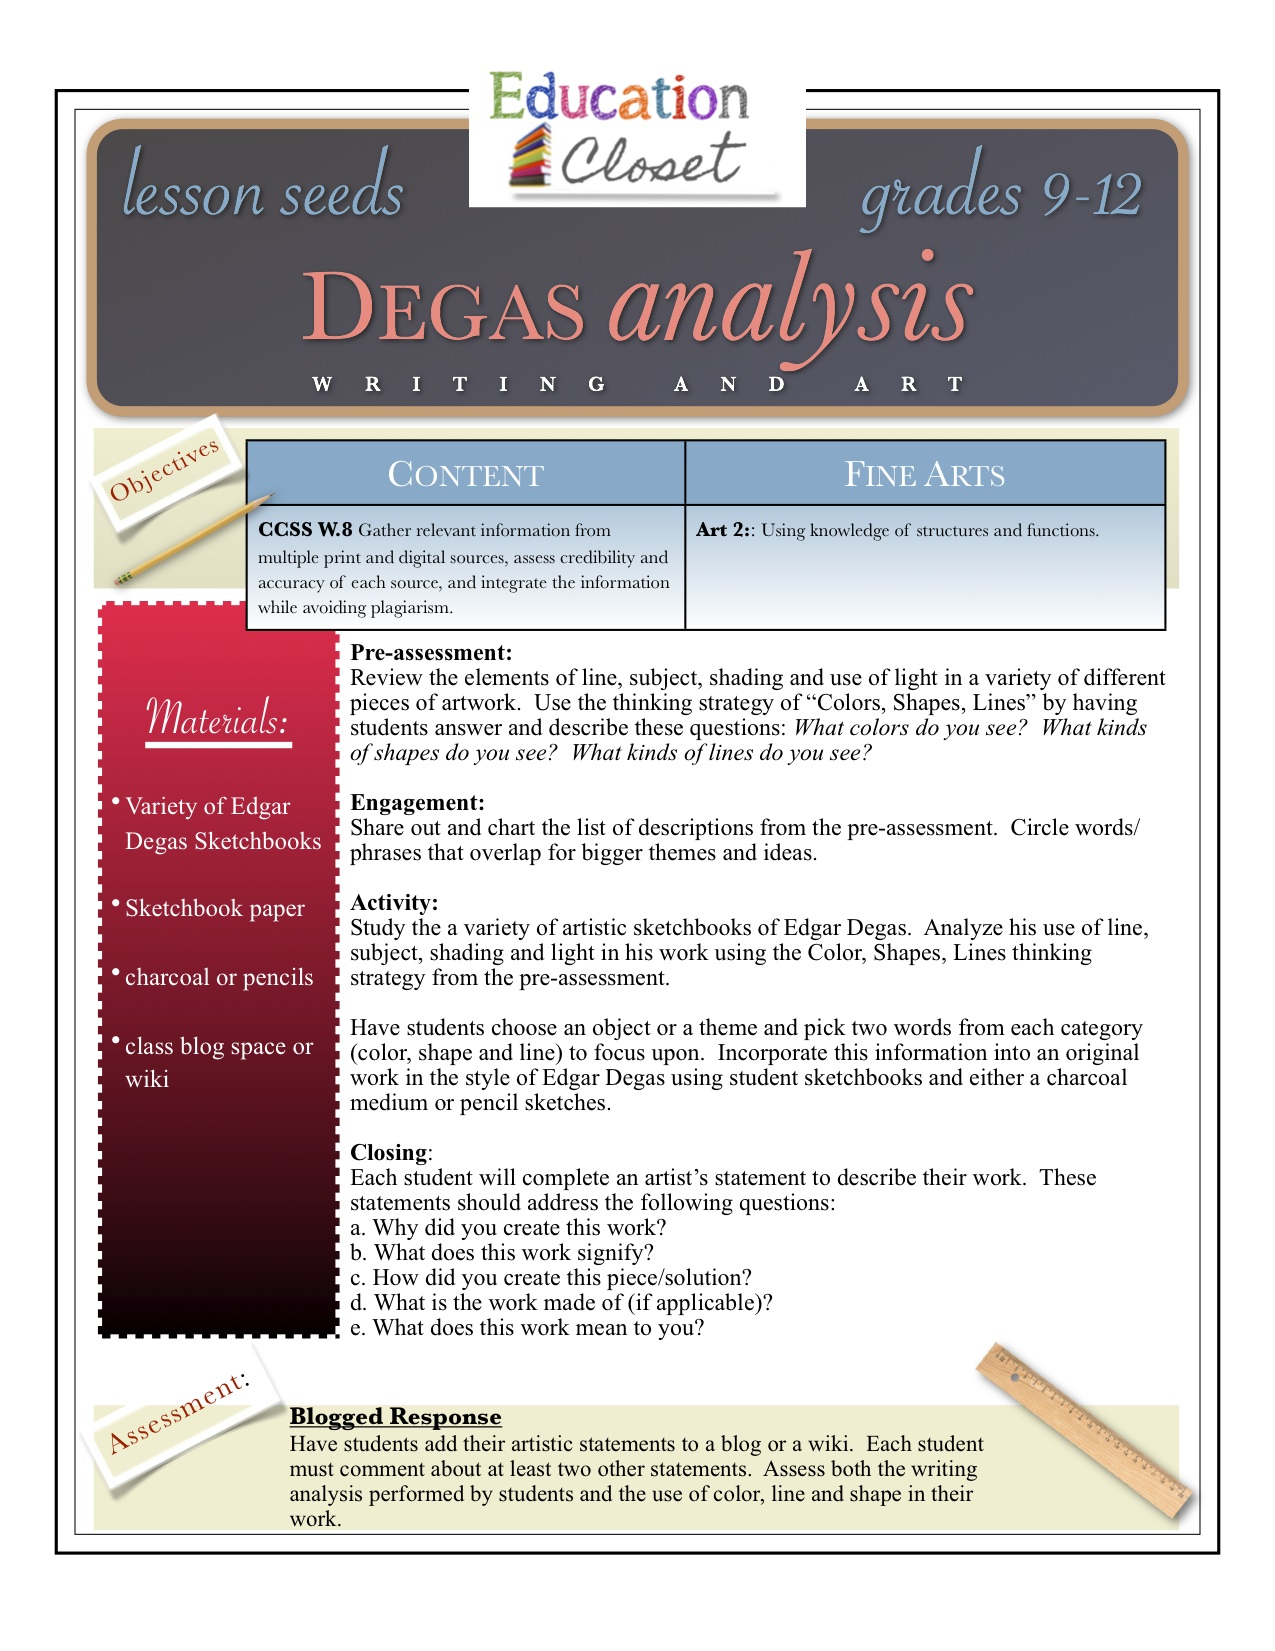 Degas Analysis This Lesson Focuses On The Elements Of Visual Art Through  The Masterworks Of Degas Stem And Leaf Plot